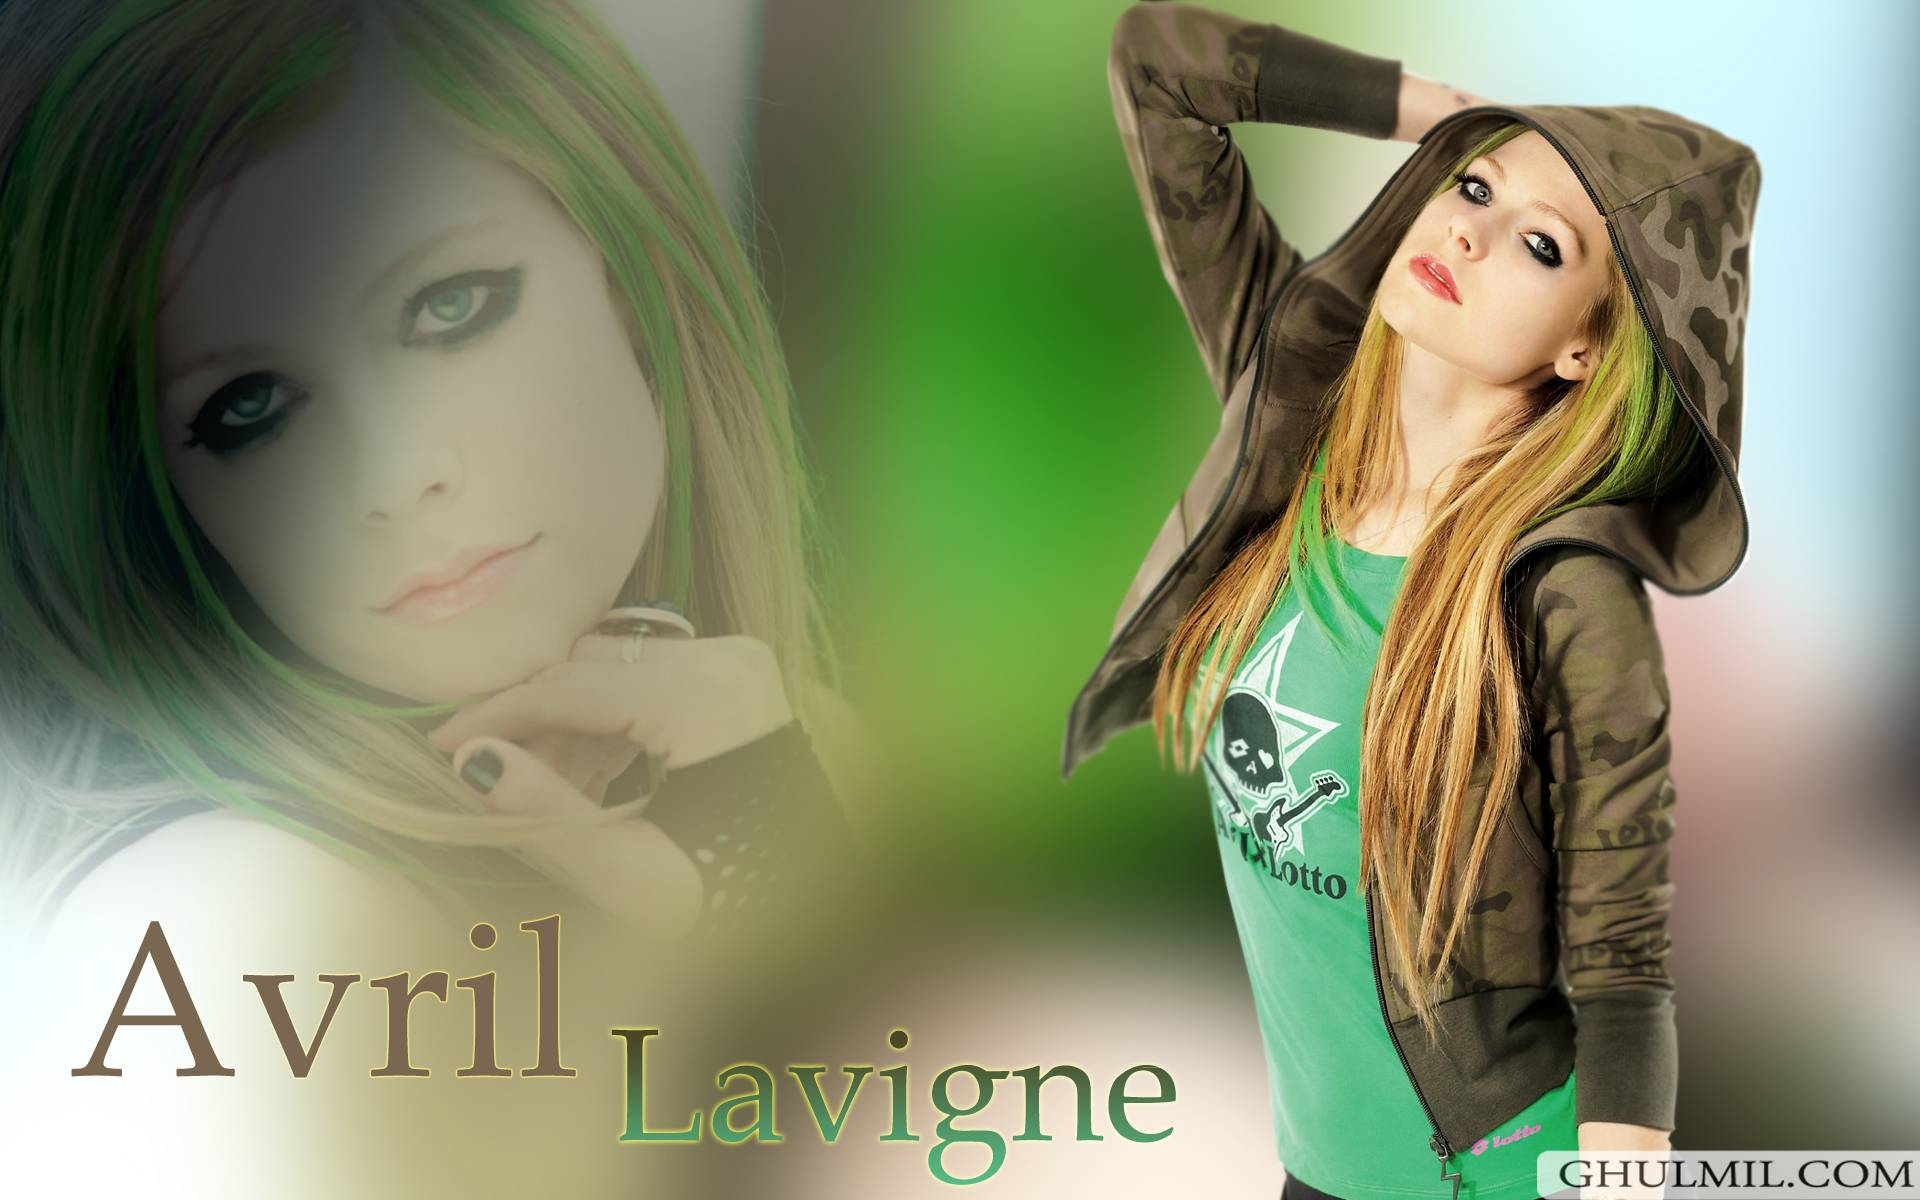 Avril lavigne wallpapers wallpaper cave avril lavigne wallpaper 2013 avril lavigne picture voltagebd Image collections